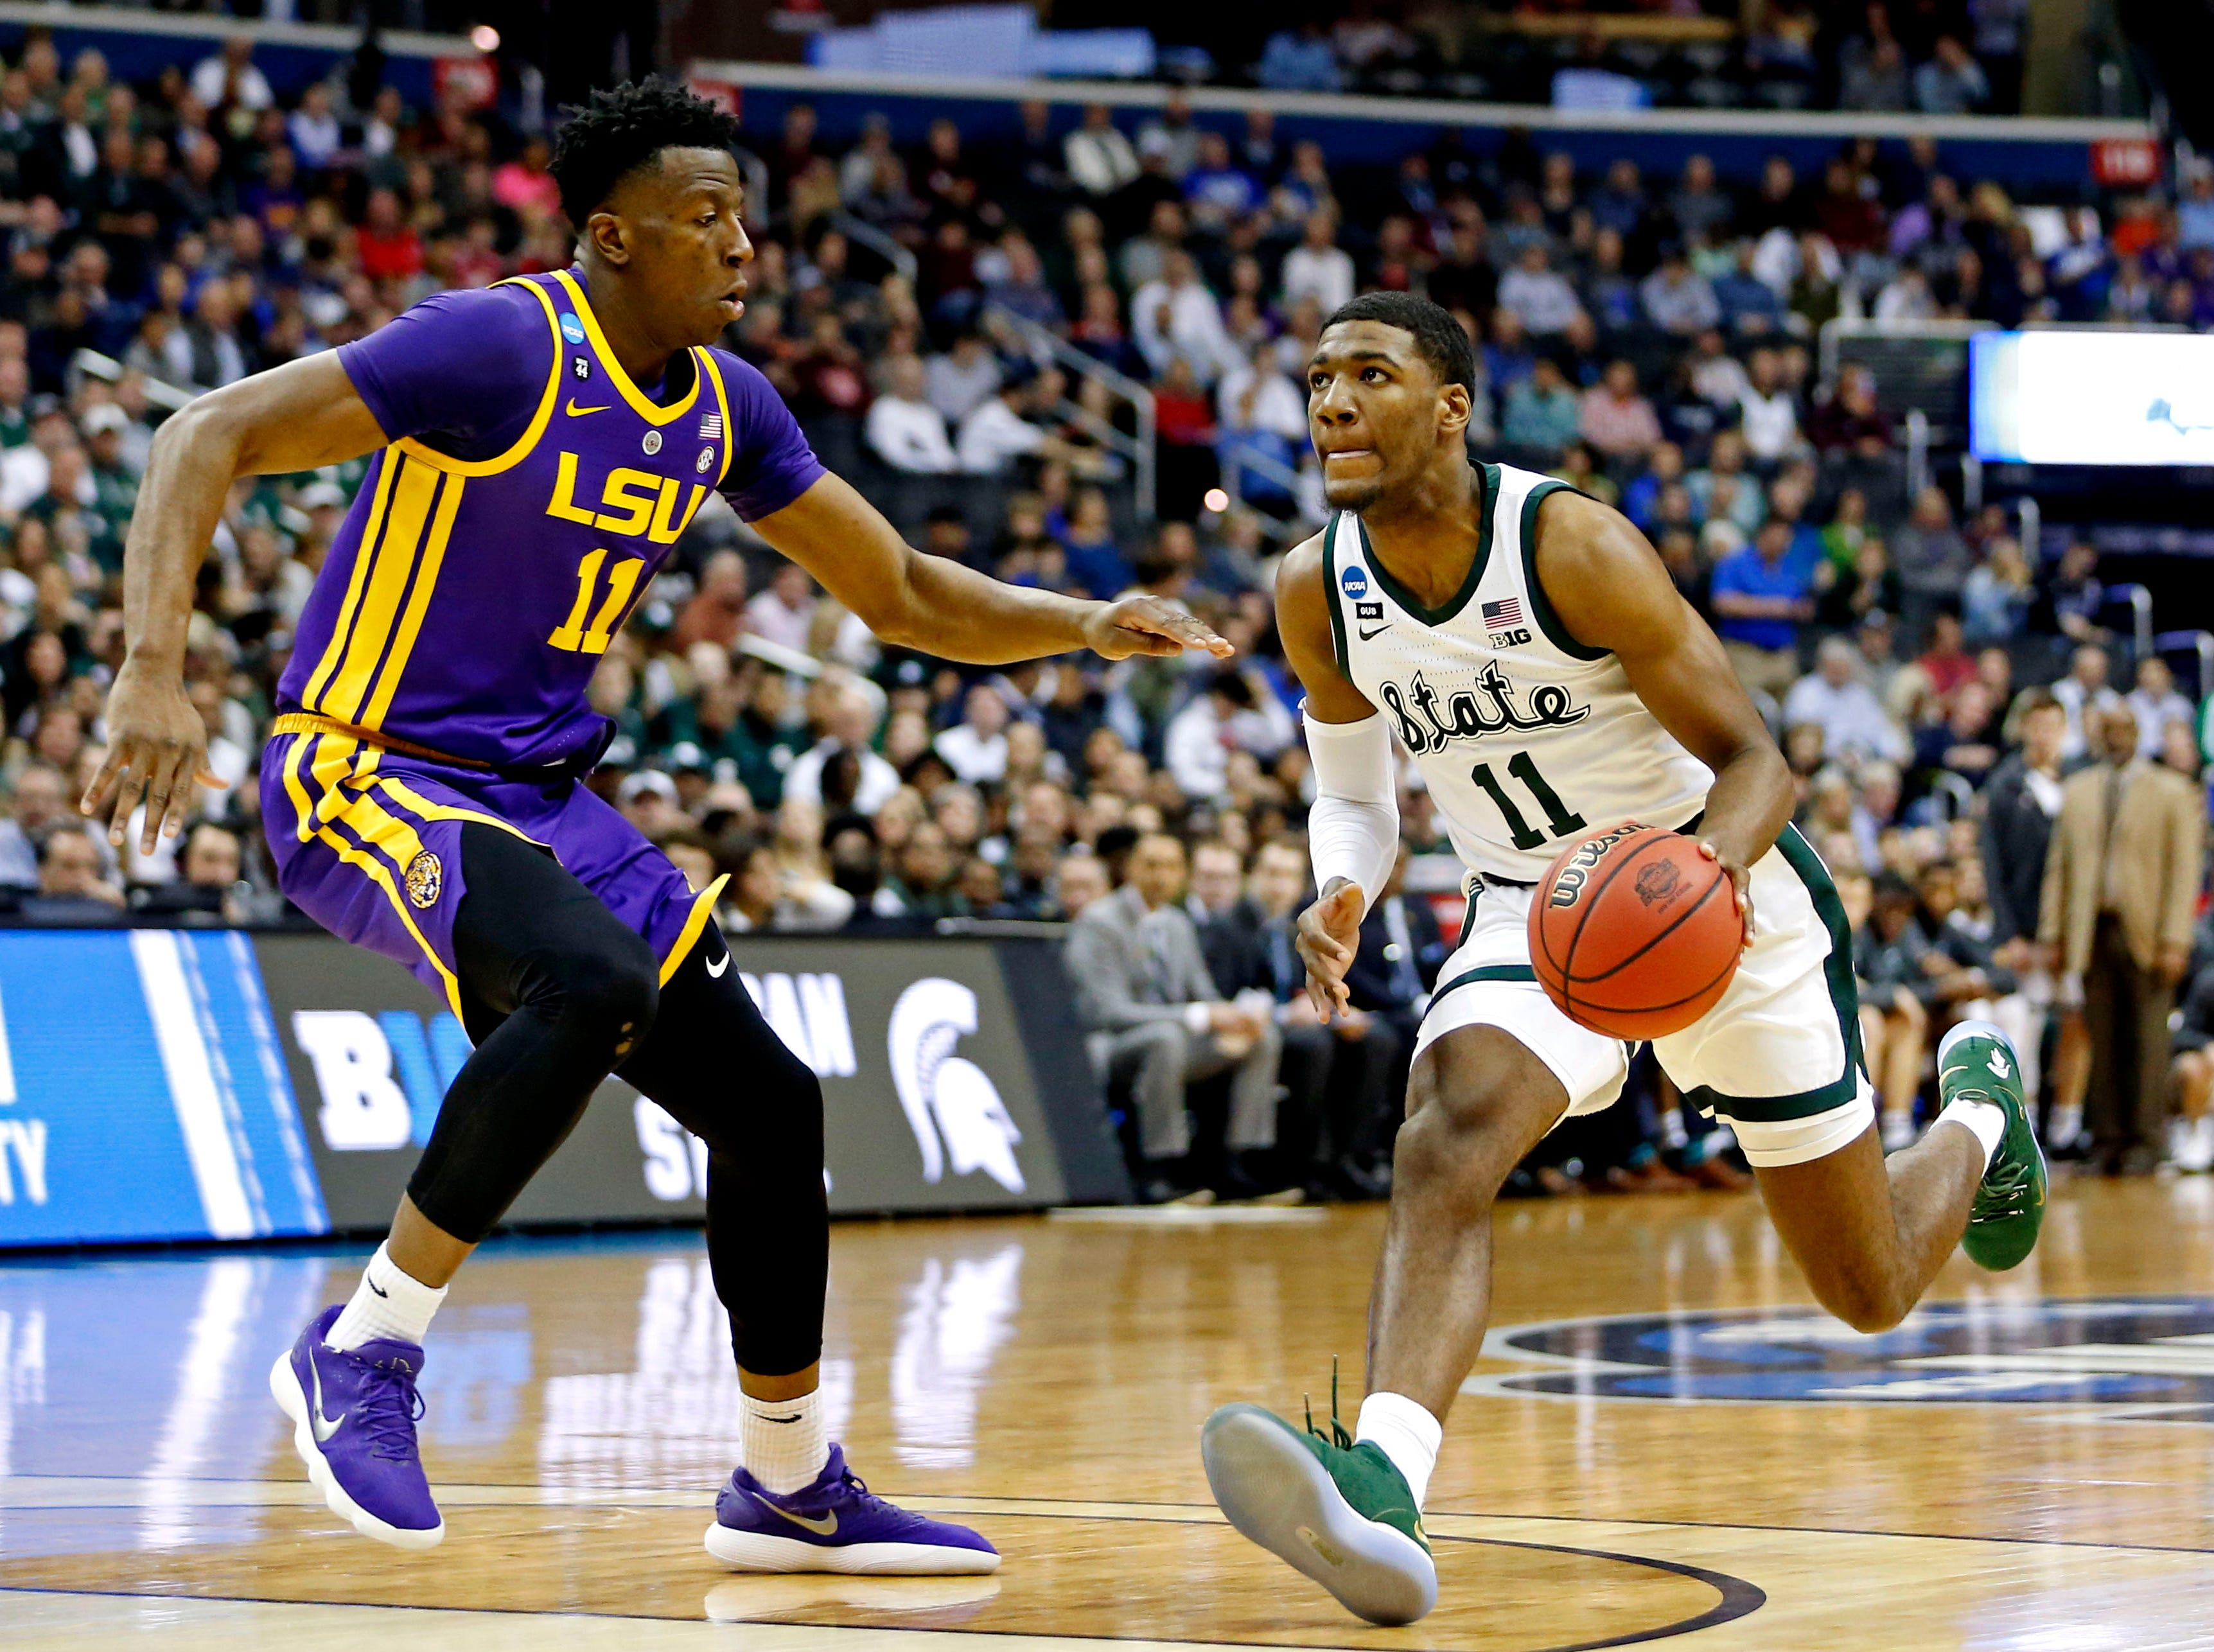 Mar 29, 2019; Washington, DC, USA; Michigan State Spartans forward Aaron Henry (11) drives to the basket against LSU Tigers forward Kavell Bigby-Williams (11) during the first half in the semifinals of the east regional of the 2019 NCAA Tournament at Capital One Arena. Mandatory Credit: Amber Searls-USA TODAY Sports